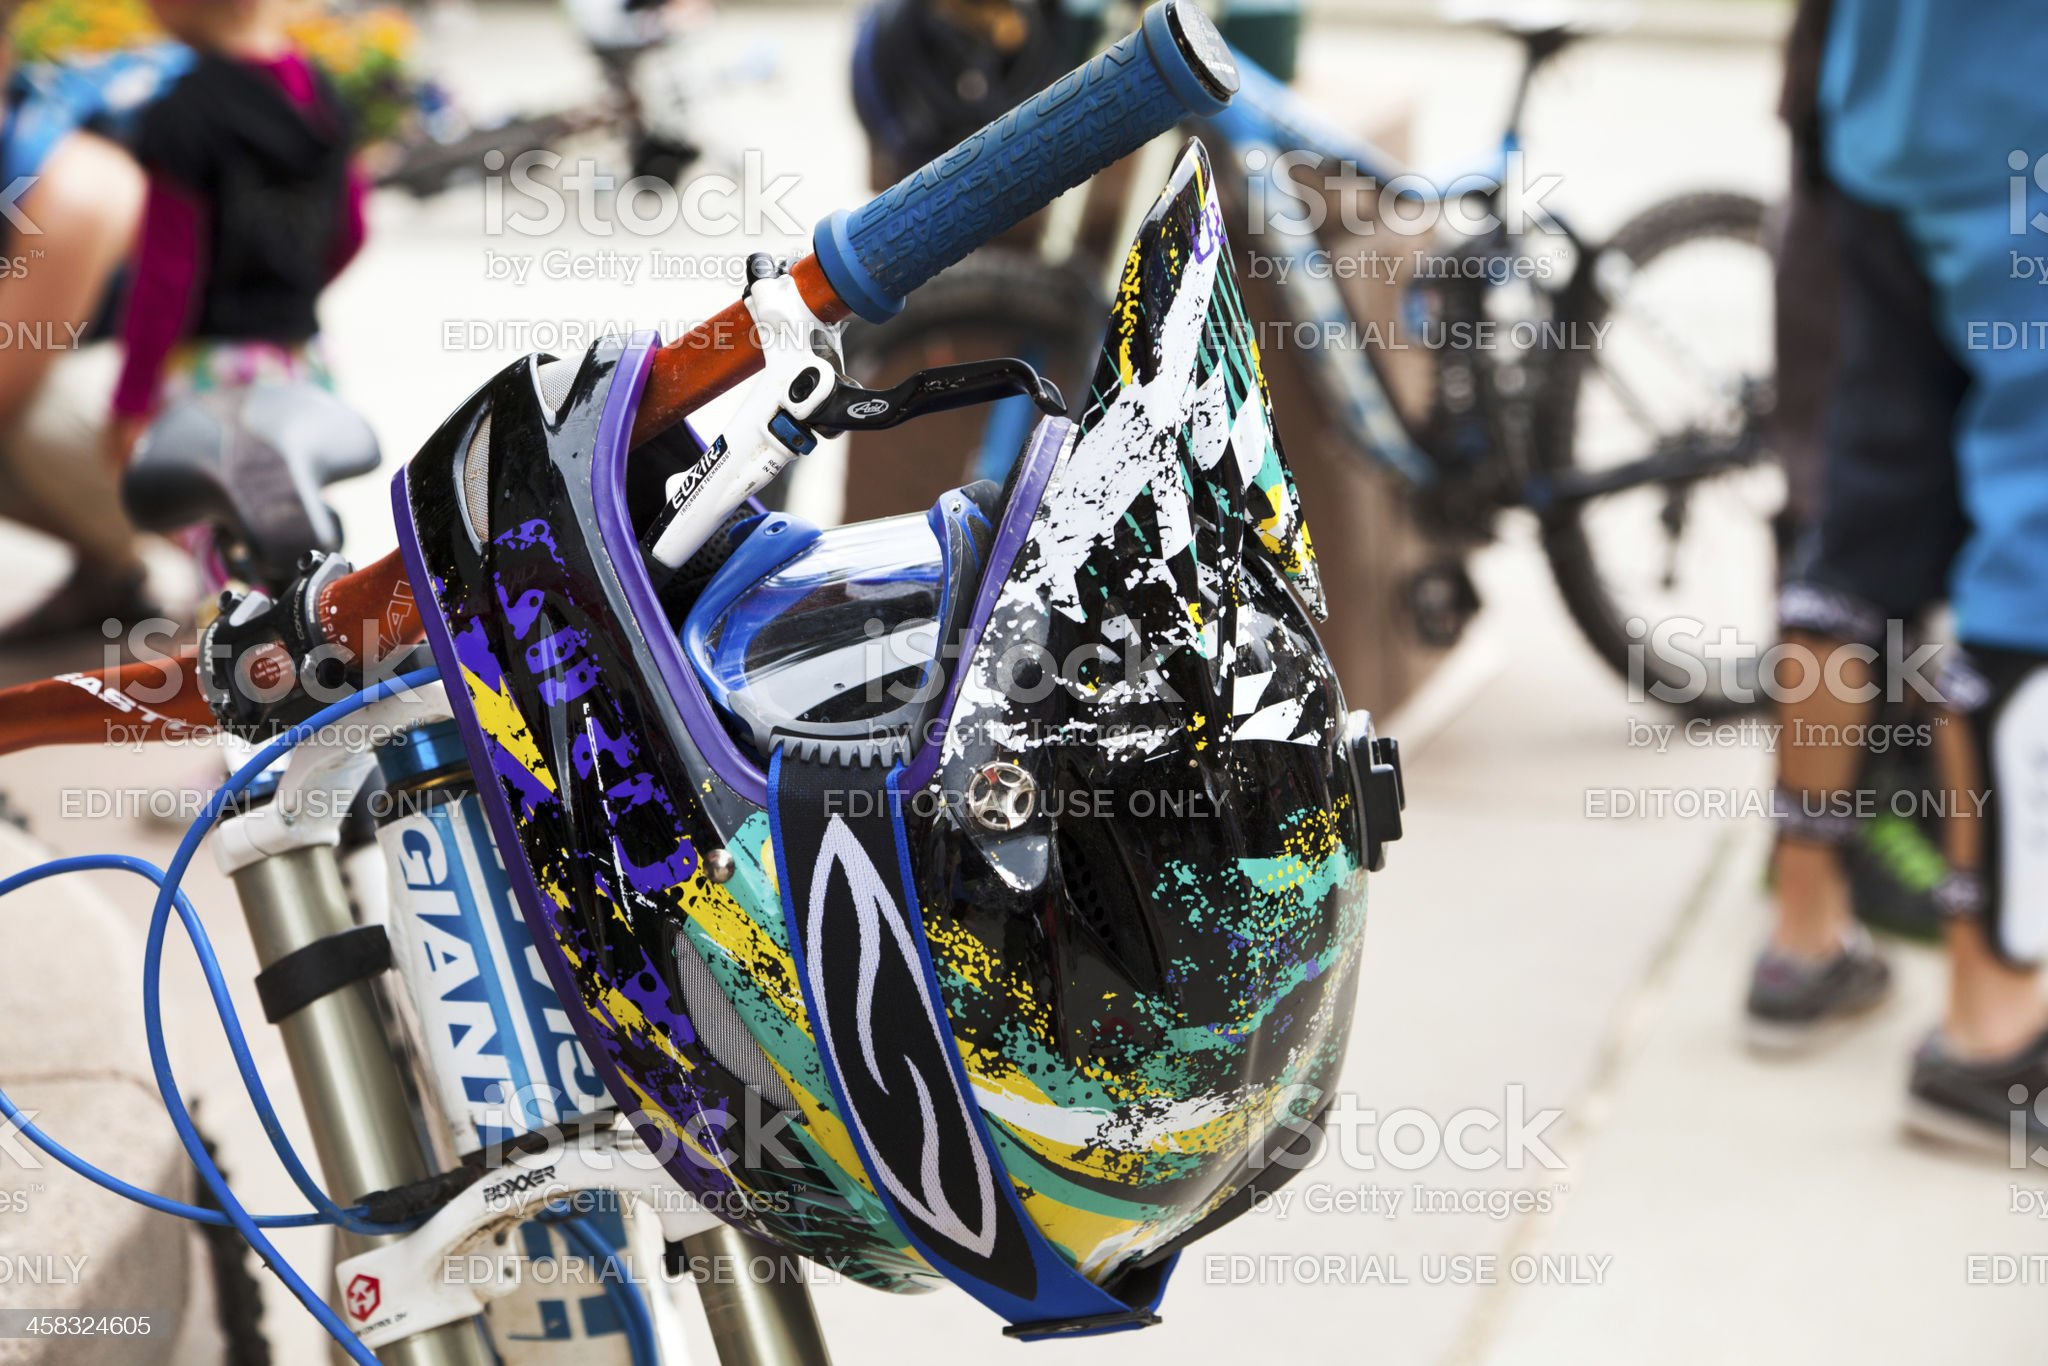 Downhill mountain bike and helmet close up royalty-free stock photo